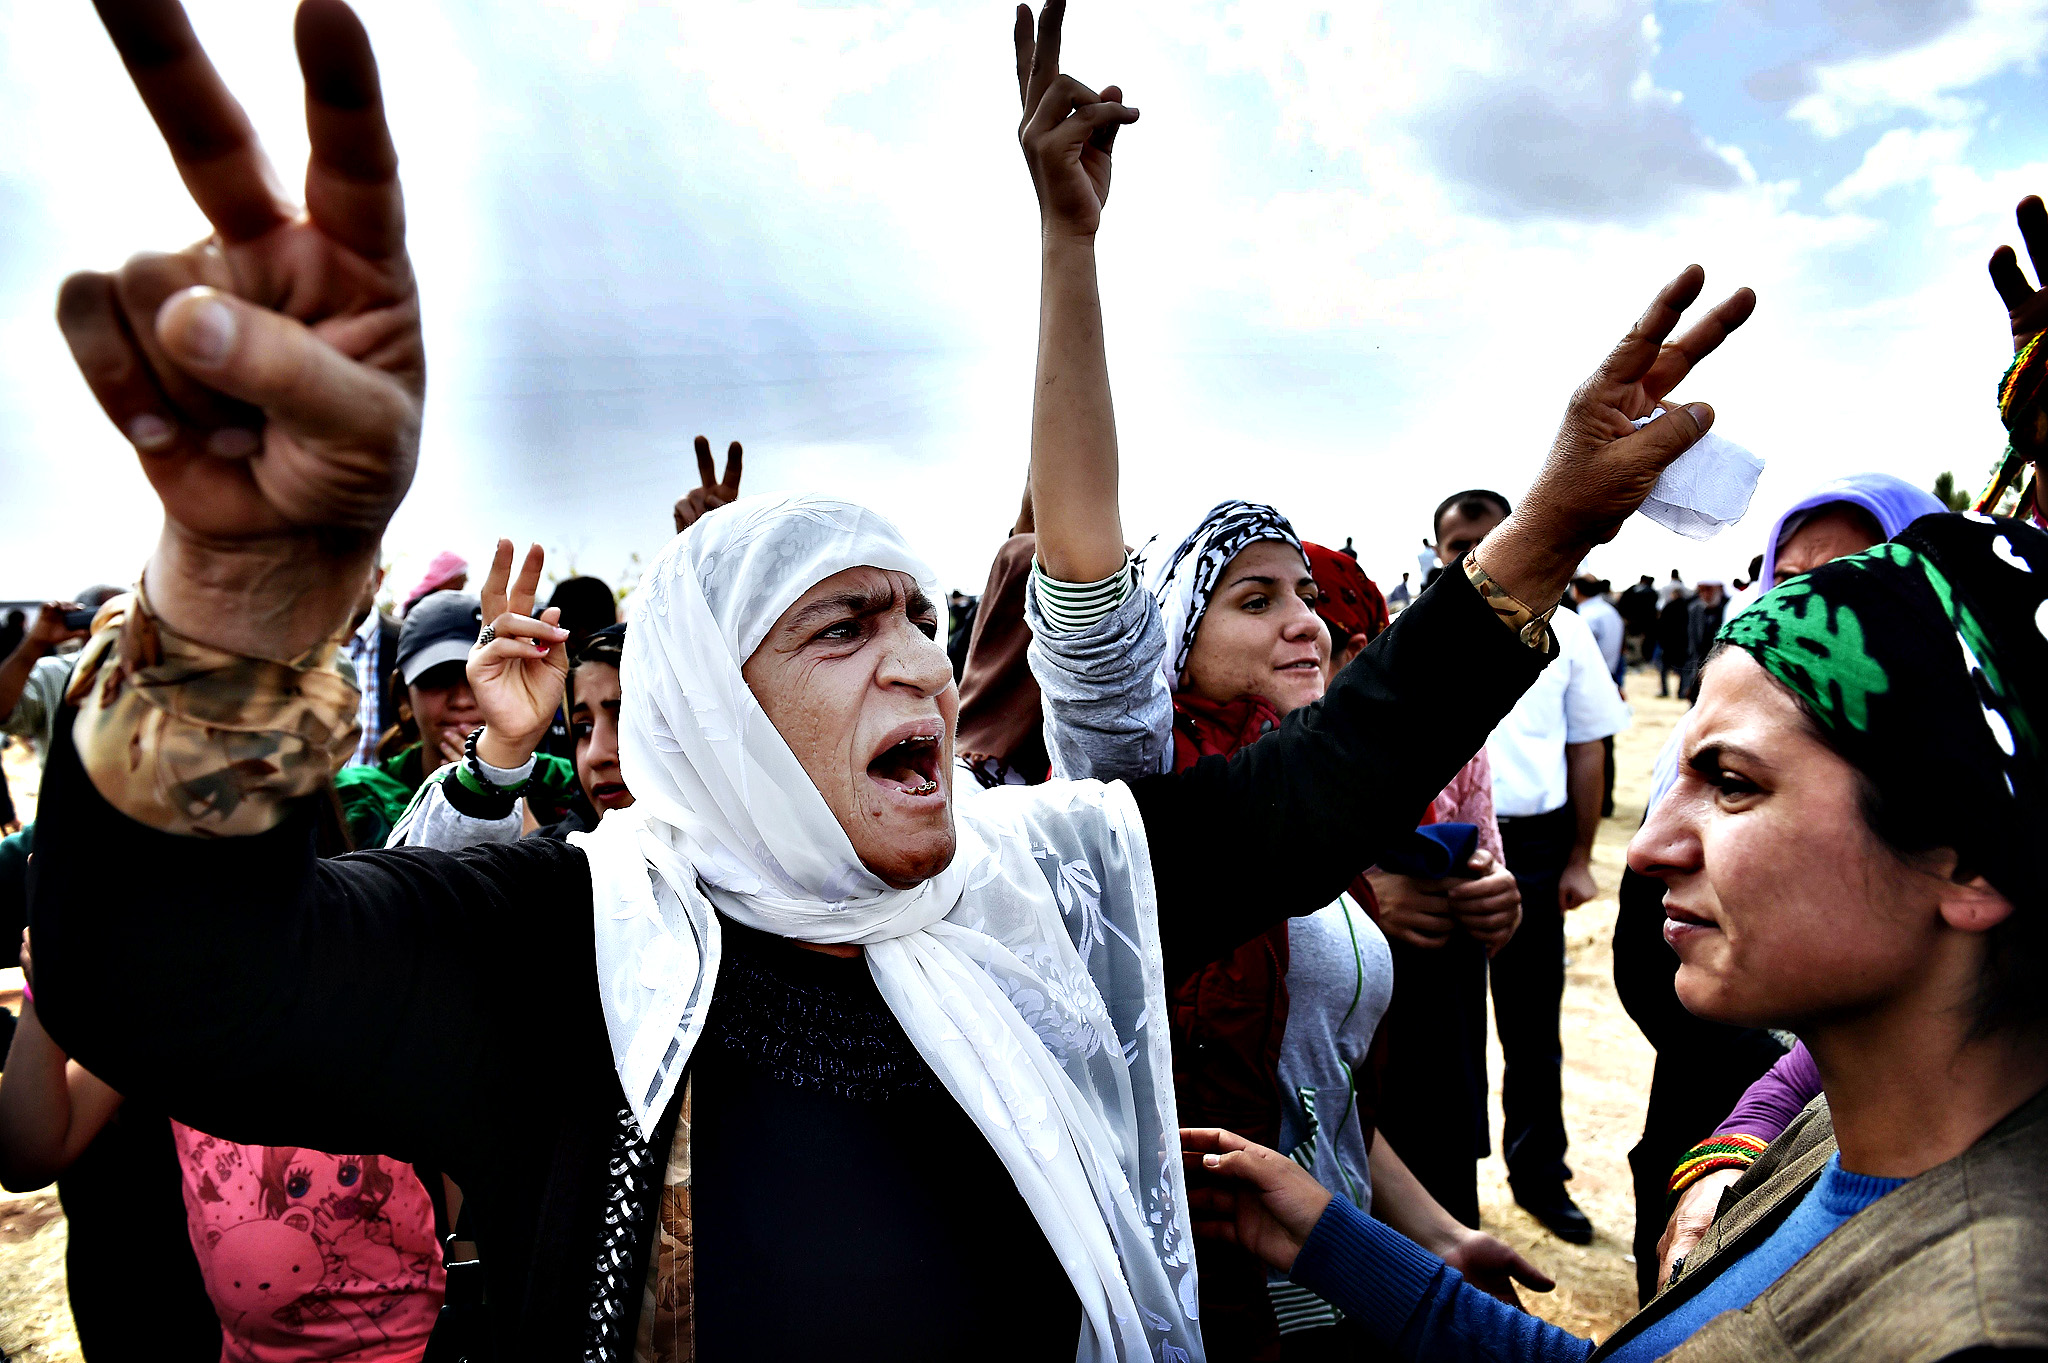 Kurdish women shout slogans during the f...Kurdish women shout slogans during the funeral of a  YPG (People's Protection Units) fighter in the town of Suruc, Sanliurfa province, on October 14, 2014. Attacking Islamic State jihadists met firm Kurdish resistance in the Syrian battleground town of Kobane on Sunday, as neighbouring Turkey heeded pressure to intervene and handed the US access to its air bases. AFP PHOTO / ARIS MESSINISARIS MESSINIS/AFP/Getty Images